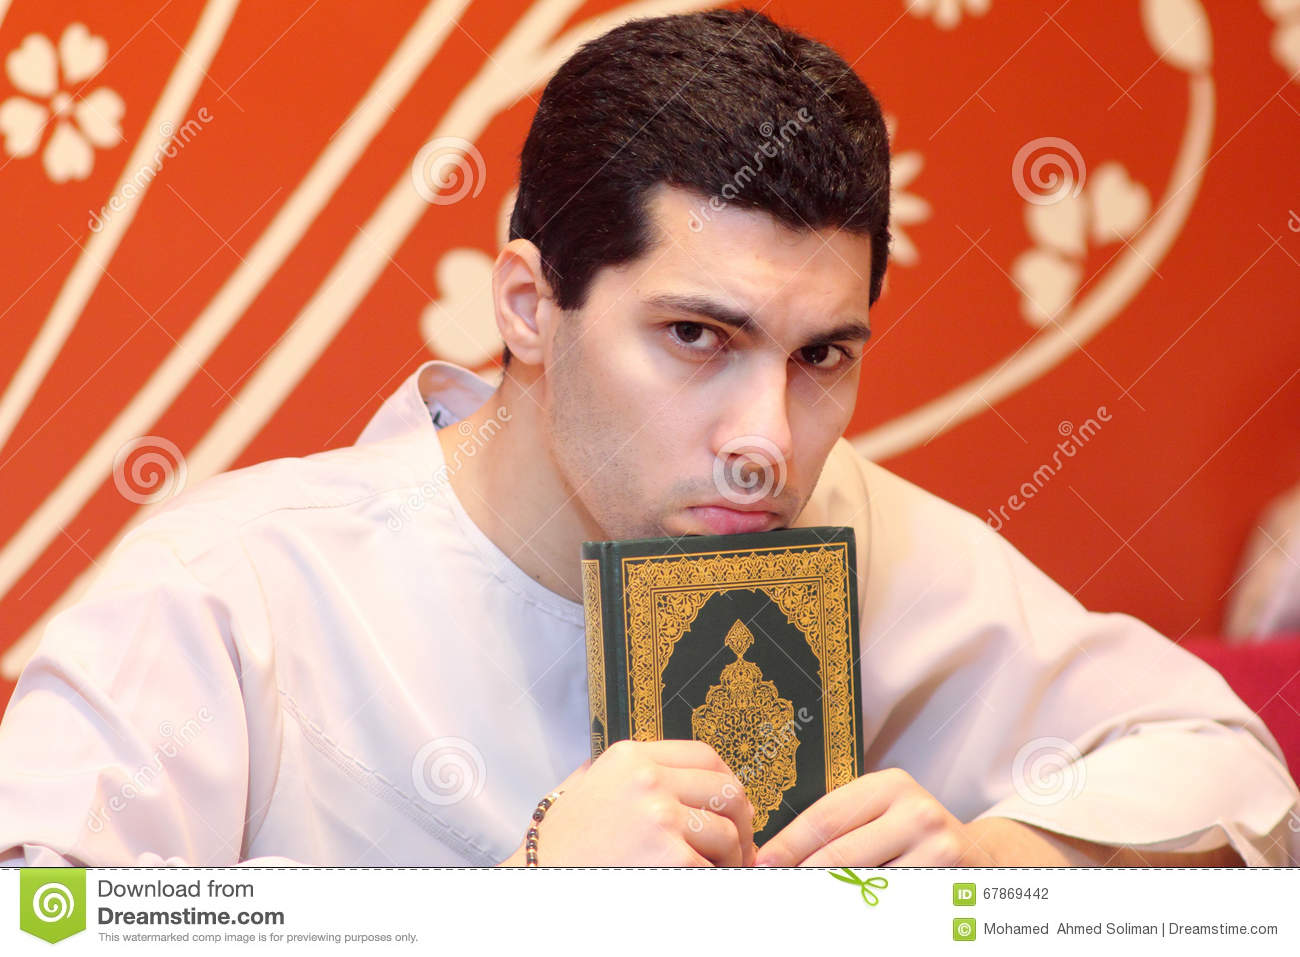 dating an egyptian muslim man Meet attractive egyptian men for dating and find your true love at muslimacom sign up today and browse profiles of attractive egyptian men for dating for free.